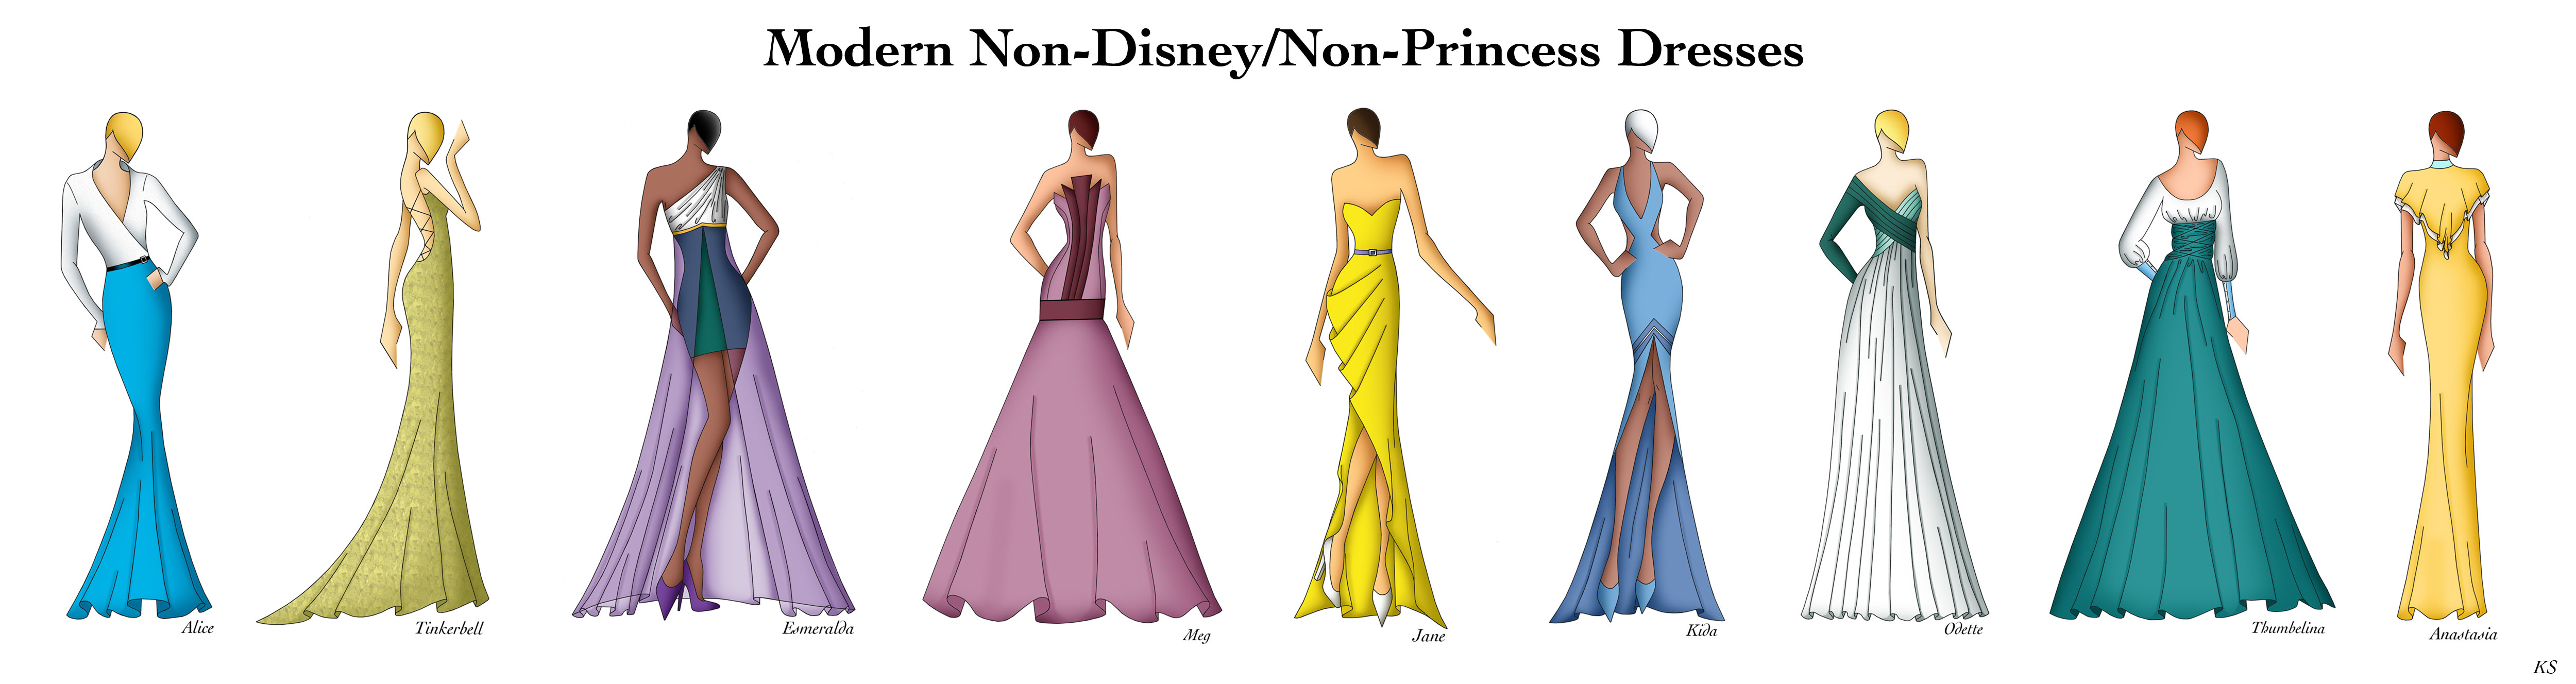 Modern Non DisneyNon Princess Dresses by Ellevira 5000x1328